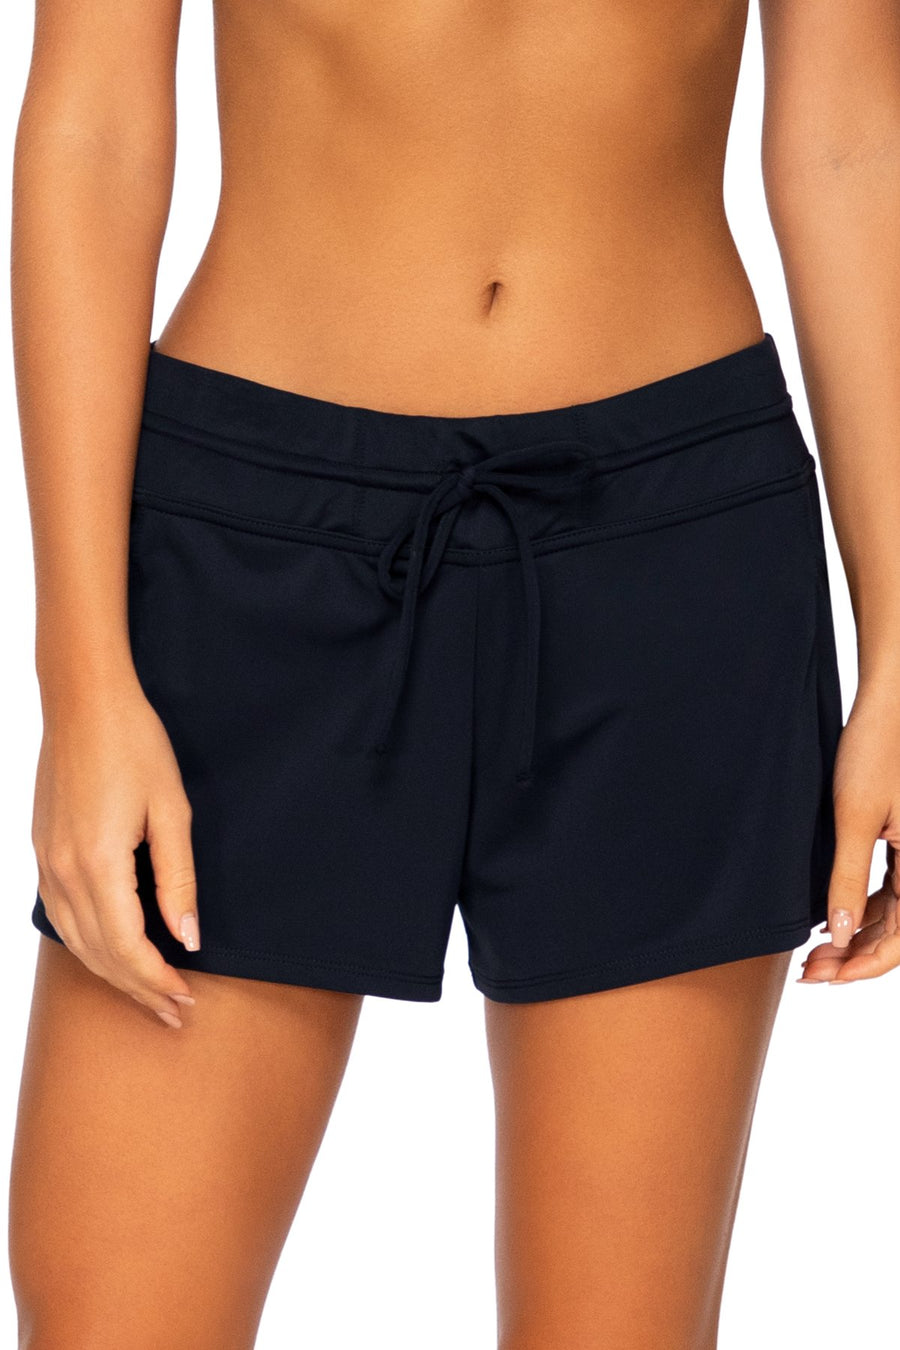 Sunsets Escape Black Laguna Swim Short Bottom - Key West Swimwear